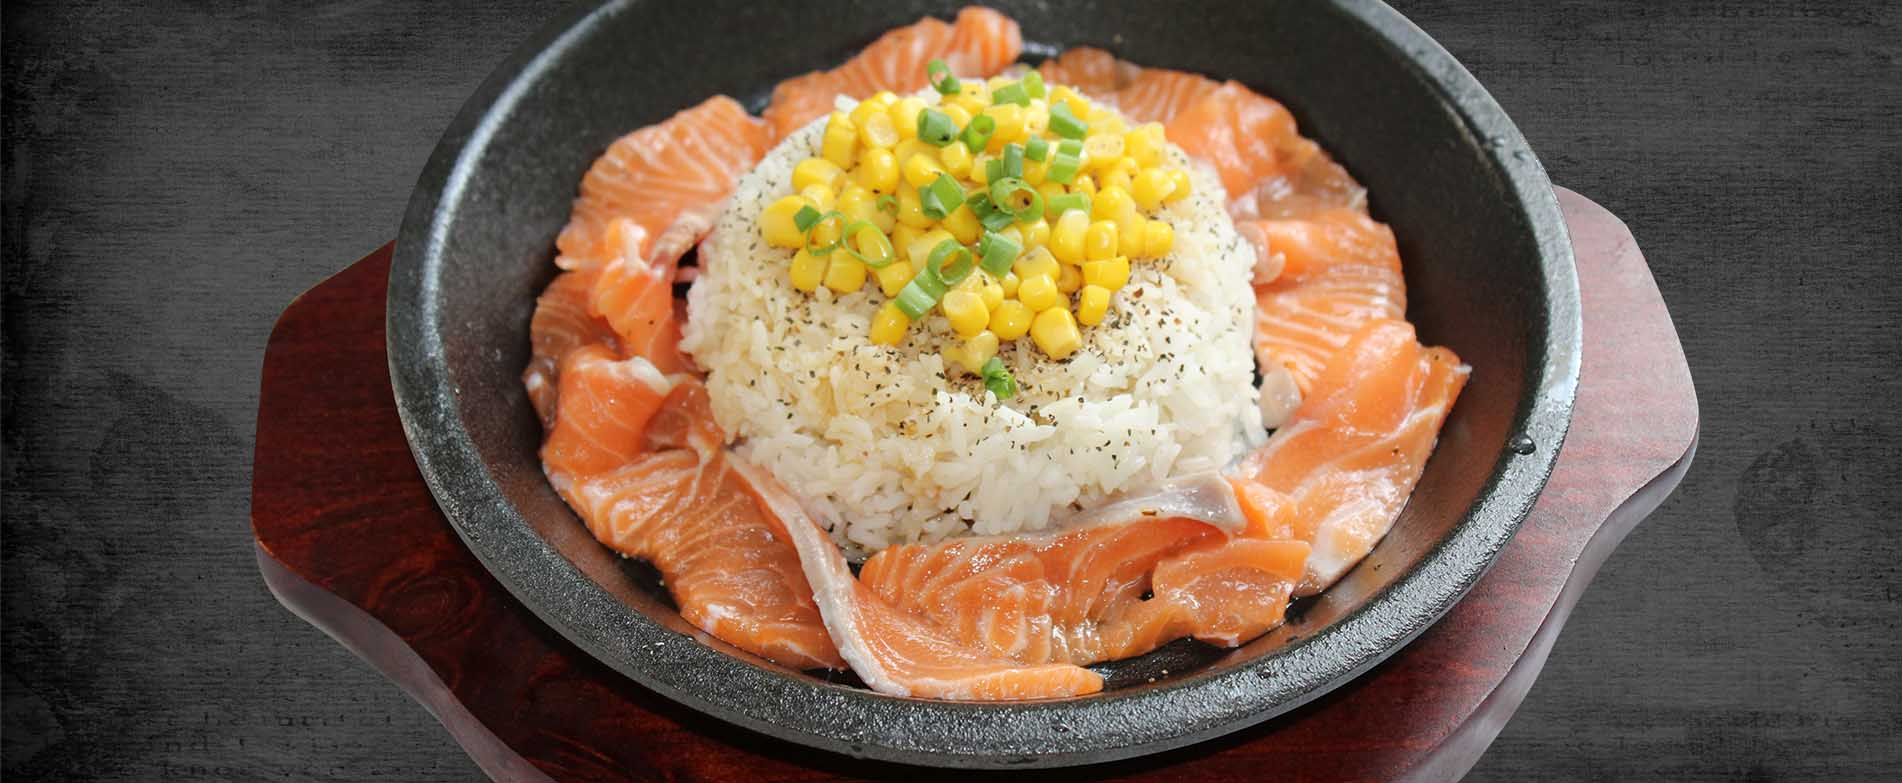 korean-food-salmon